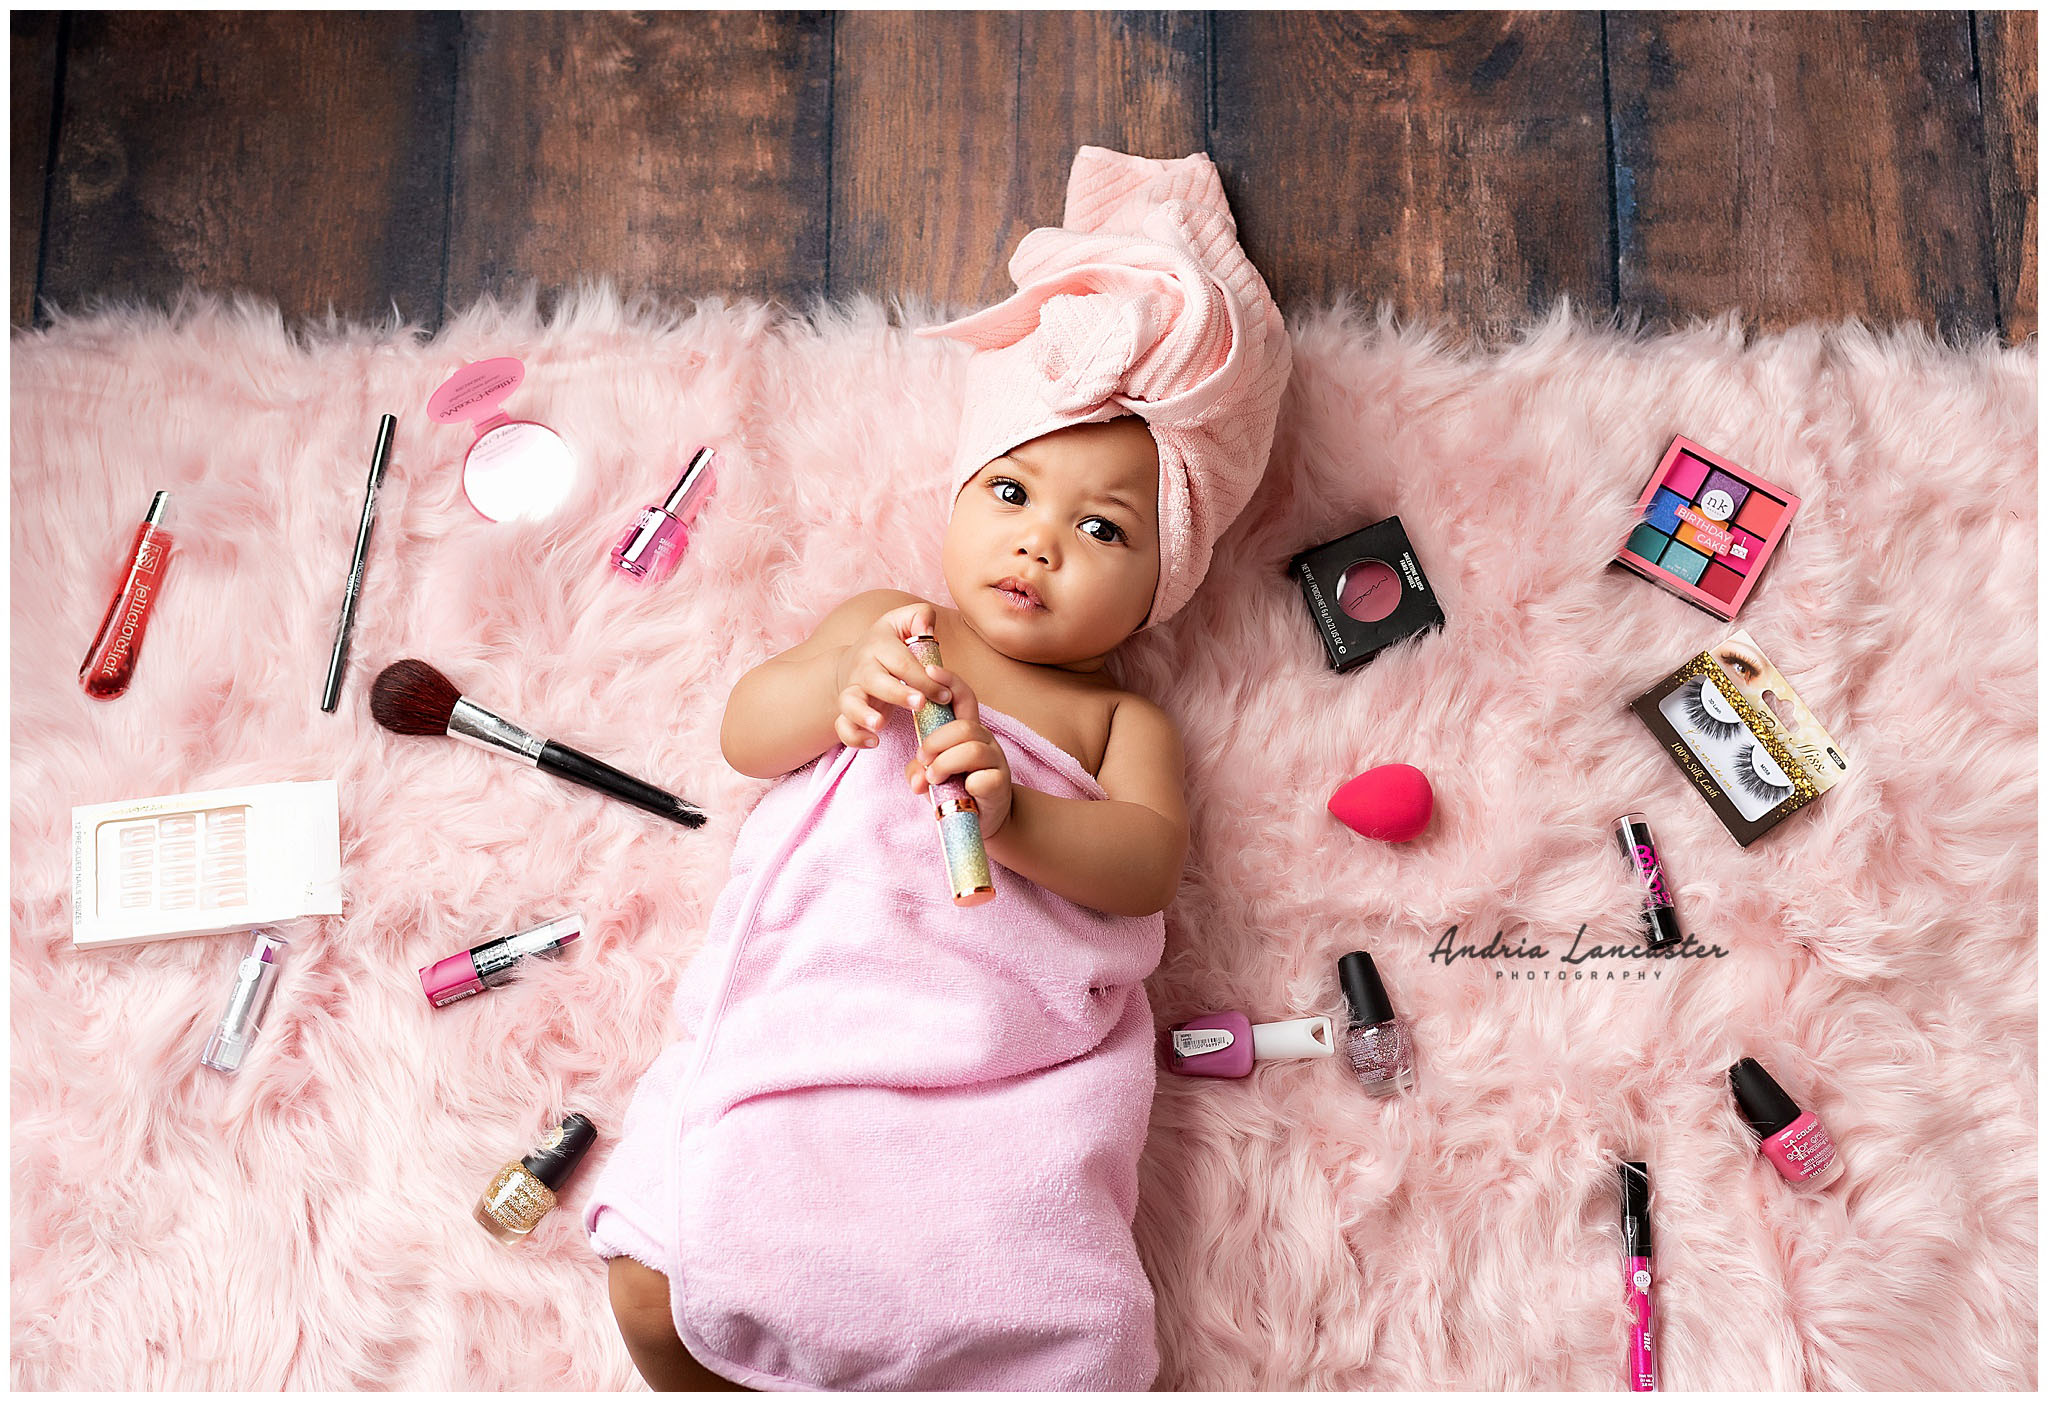 baby with towel on head laying on rug with makeup items